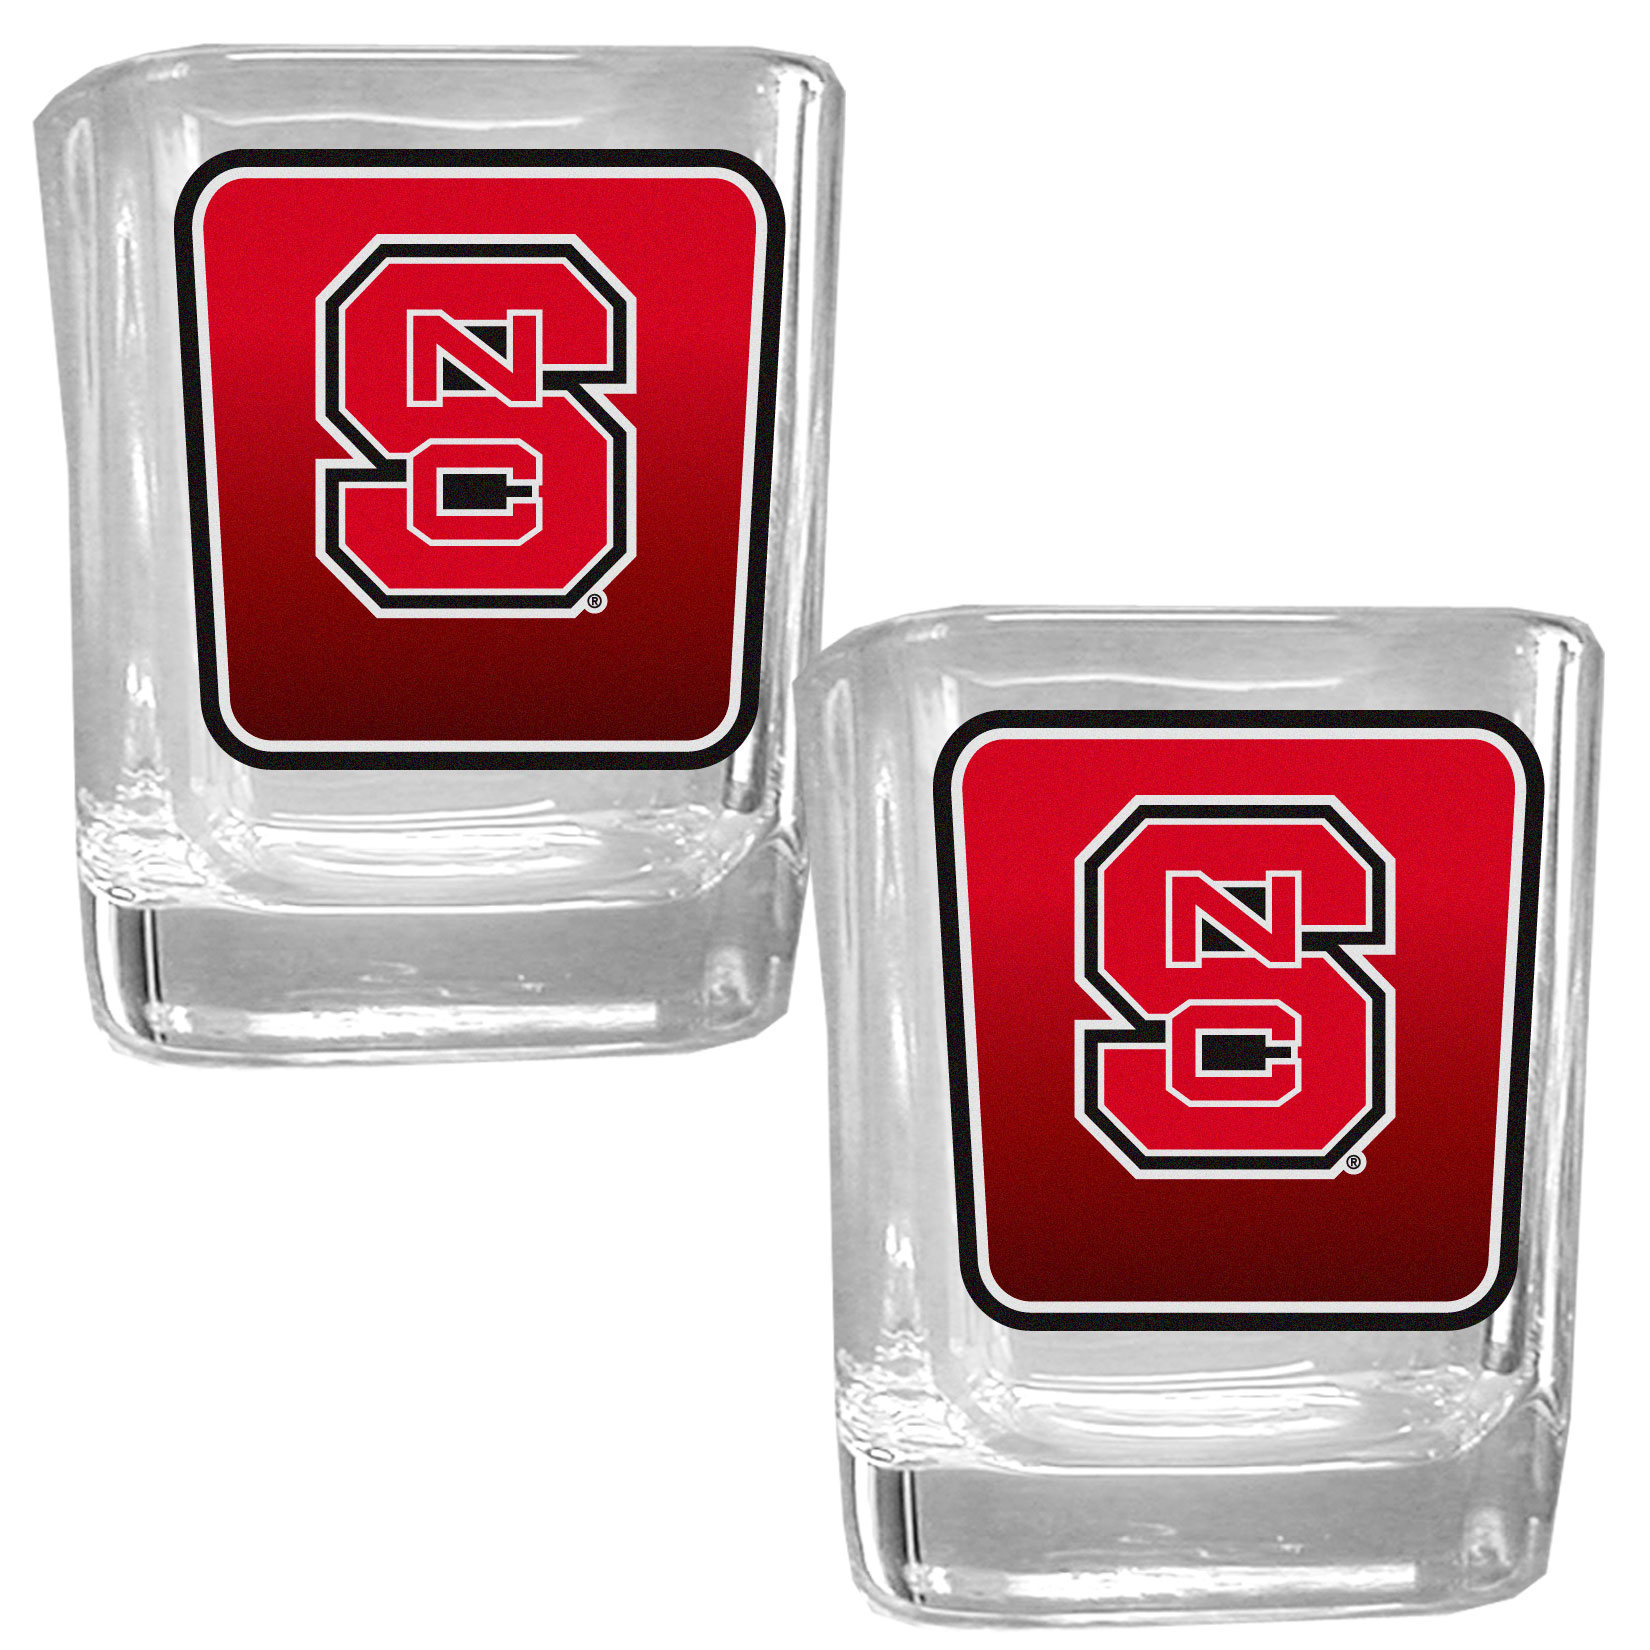 N. Carolina St. Wolfpack Square Glass Shot Glass Set - Our glass shot glasses are perfect for collectors or any game day event. The 2 ounce glasses feature bright, vidid digital N. Carolina St. Wolfpack graphics. Comes in a set of 2.